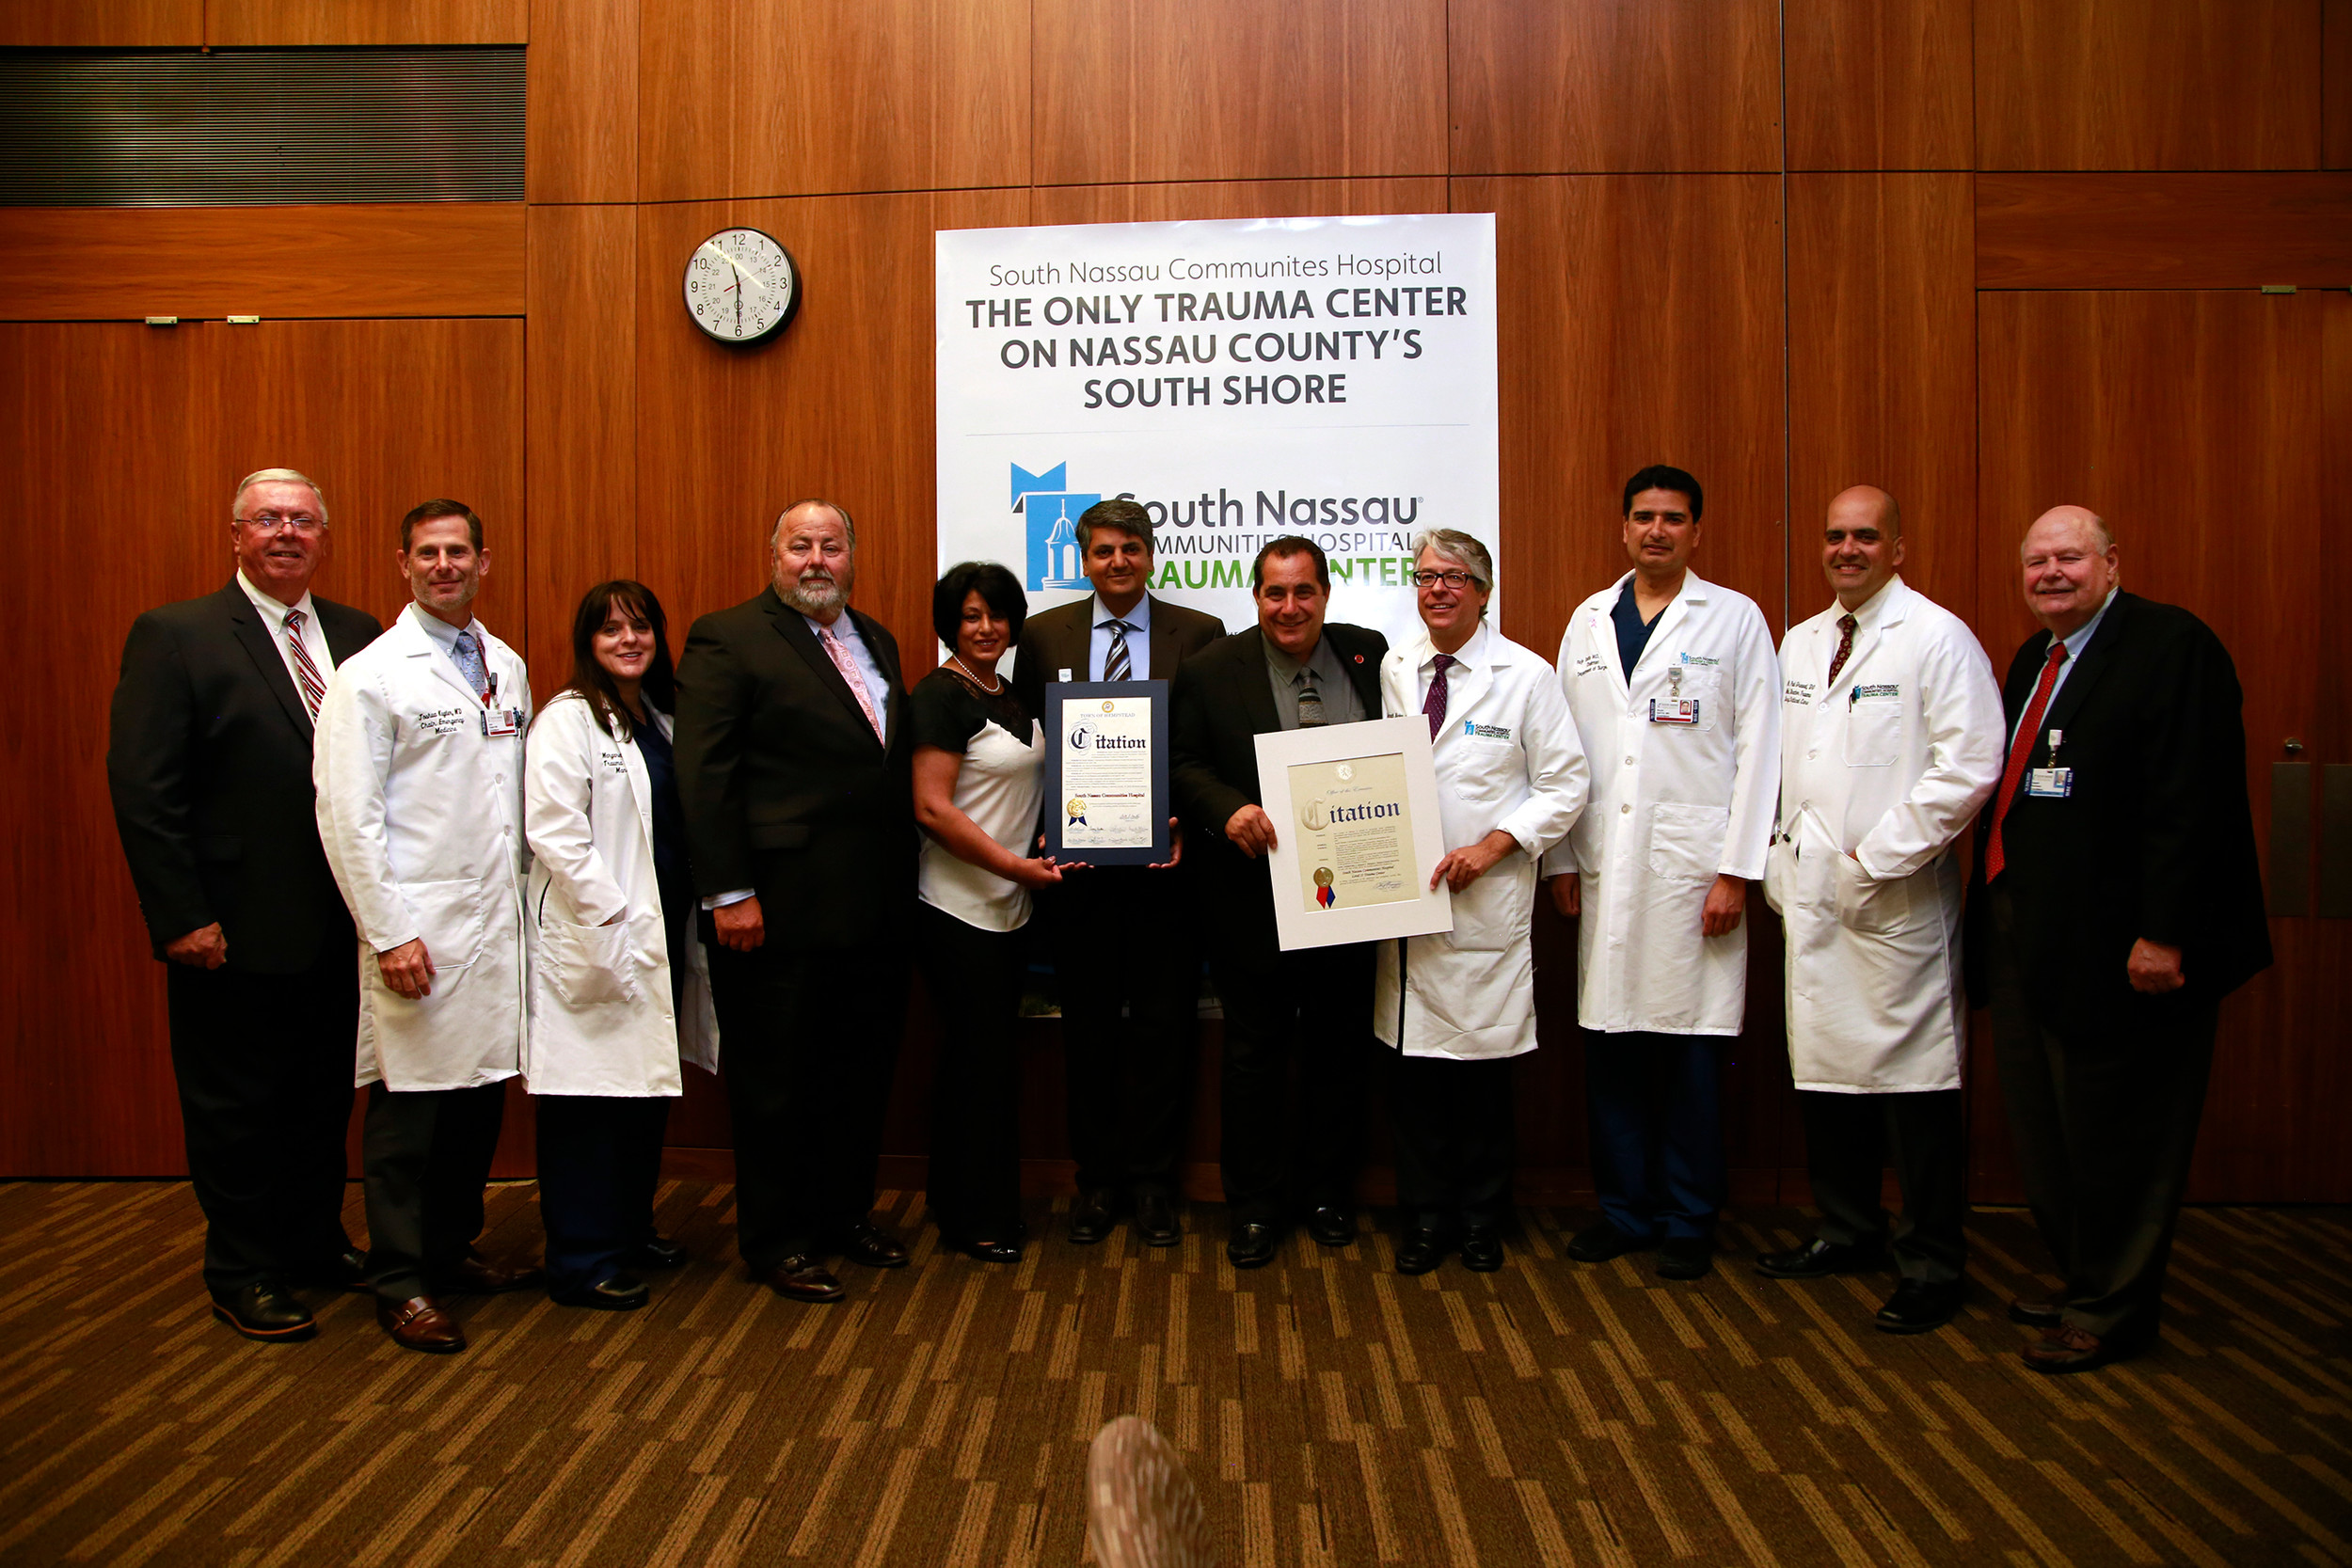 South Nassau doctors and administrators accepted citations from local elected officials after the hospital was certified as a Level II trauma center.